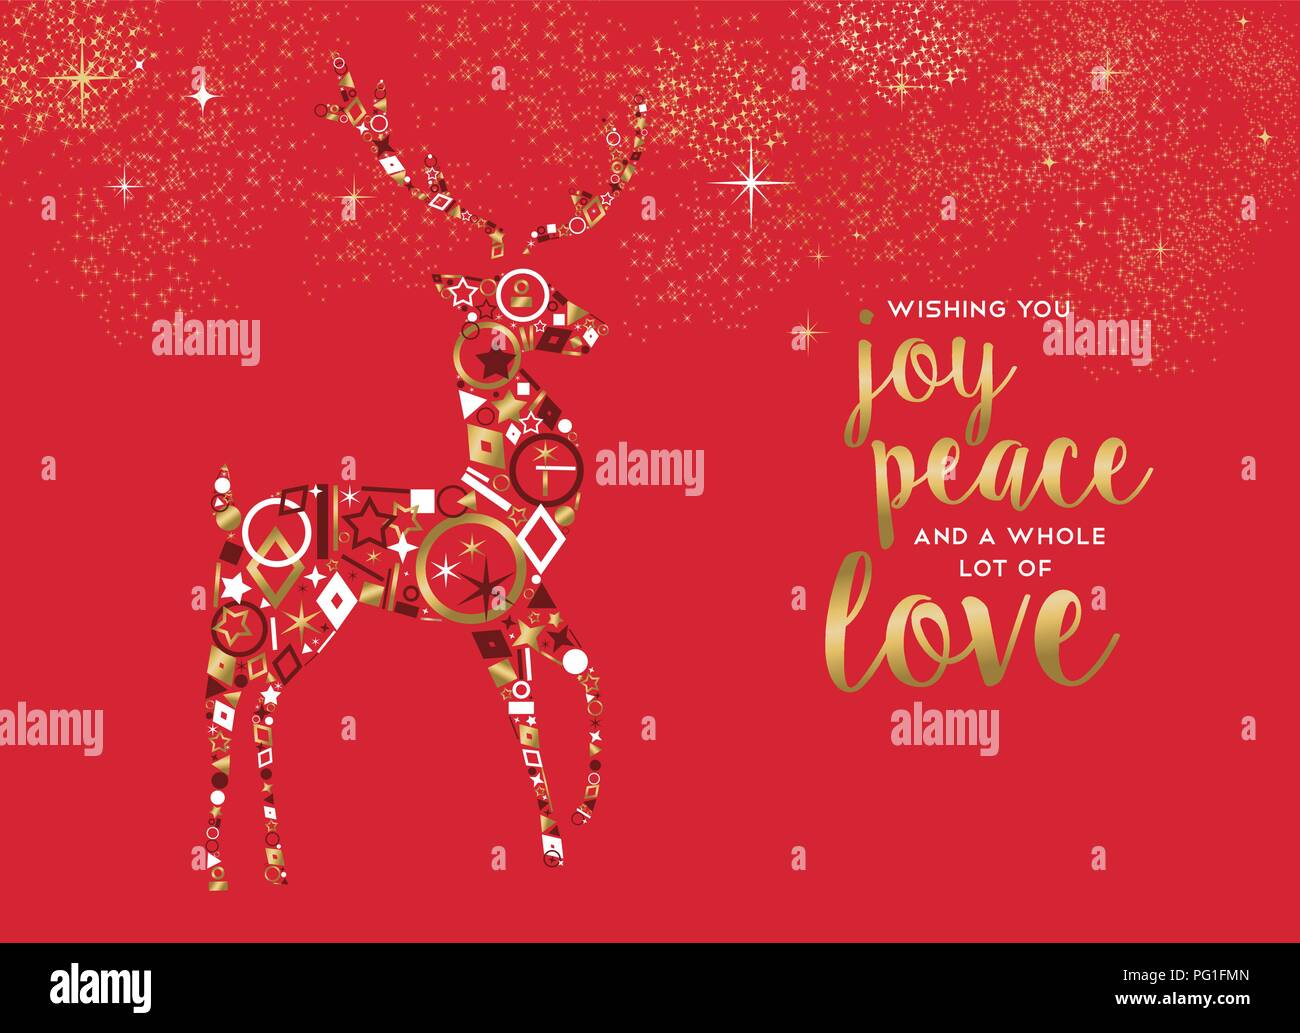 Merry Christmas Greeting Card Illustration Gold Xmas Reindeer Made Of Elegant Golden Icons With Joy Peace And Love Text On Red Color Holidays Backgr Stock Vector Image Art Alamy